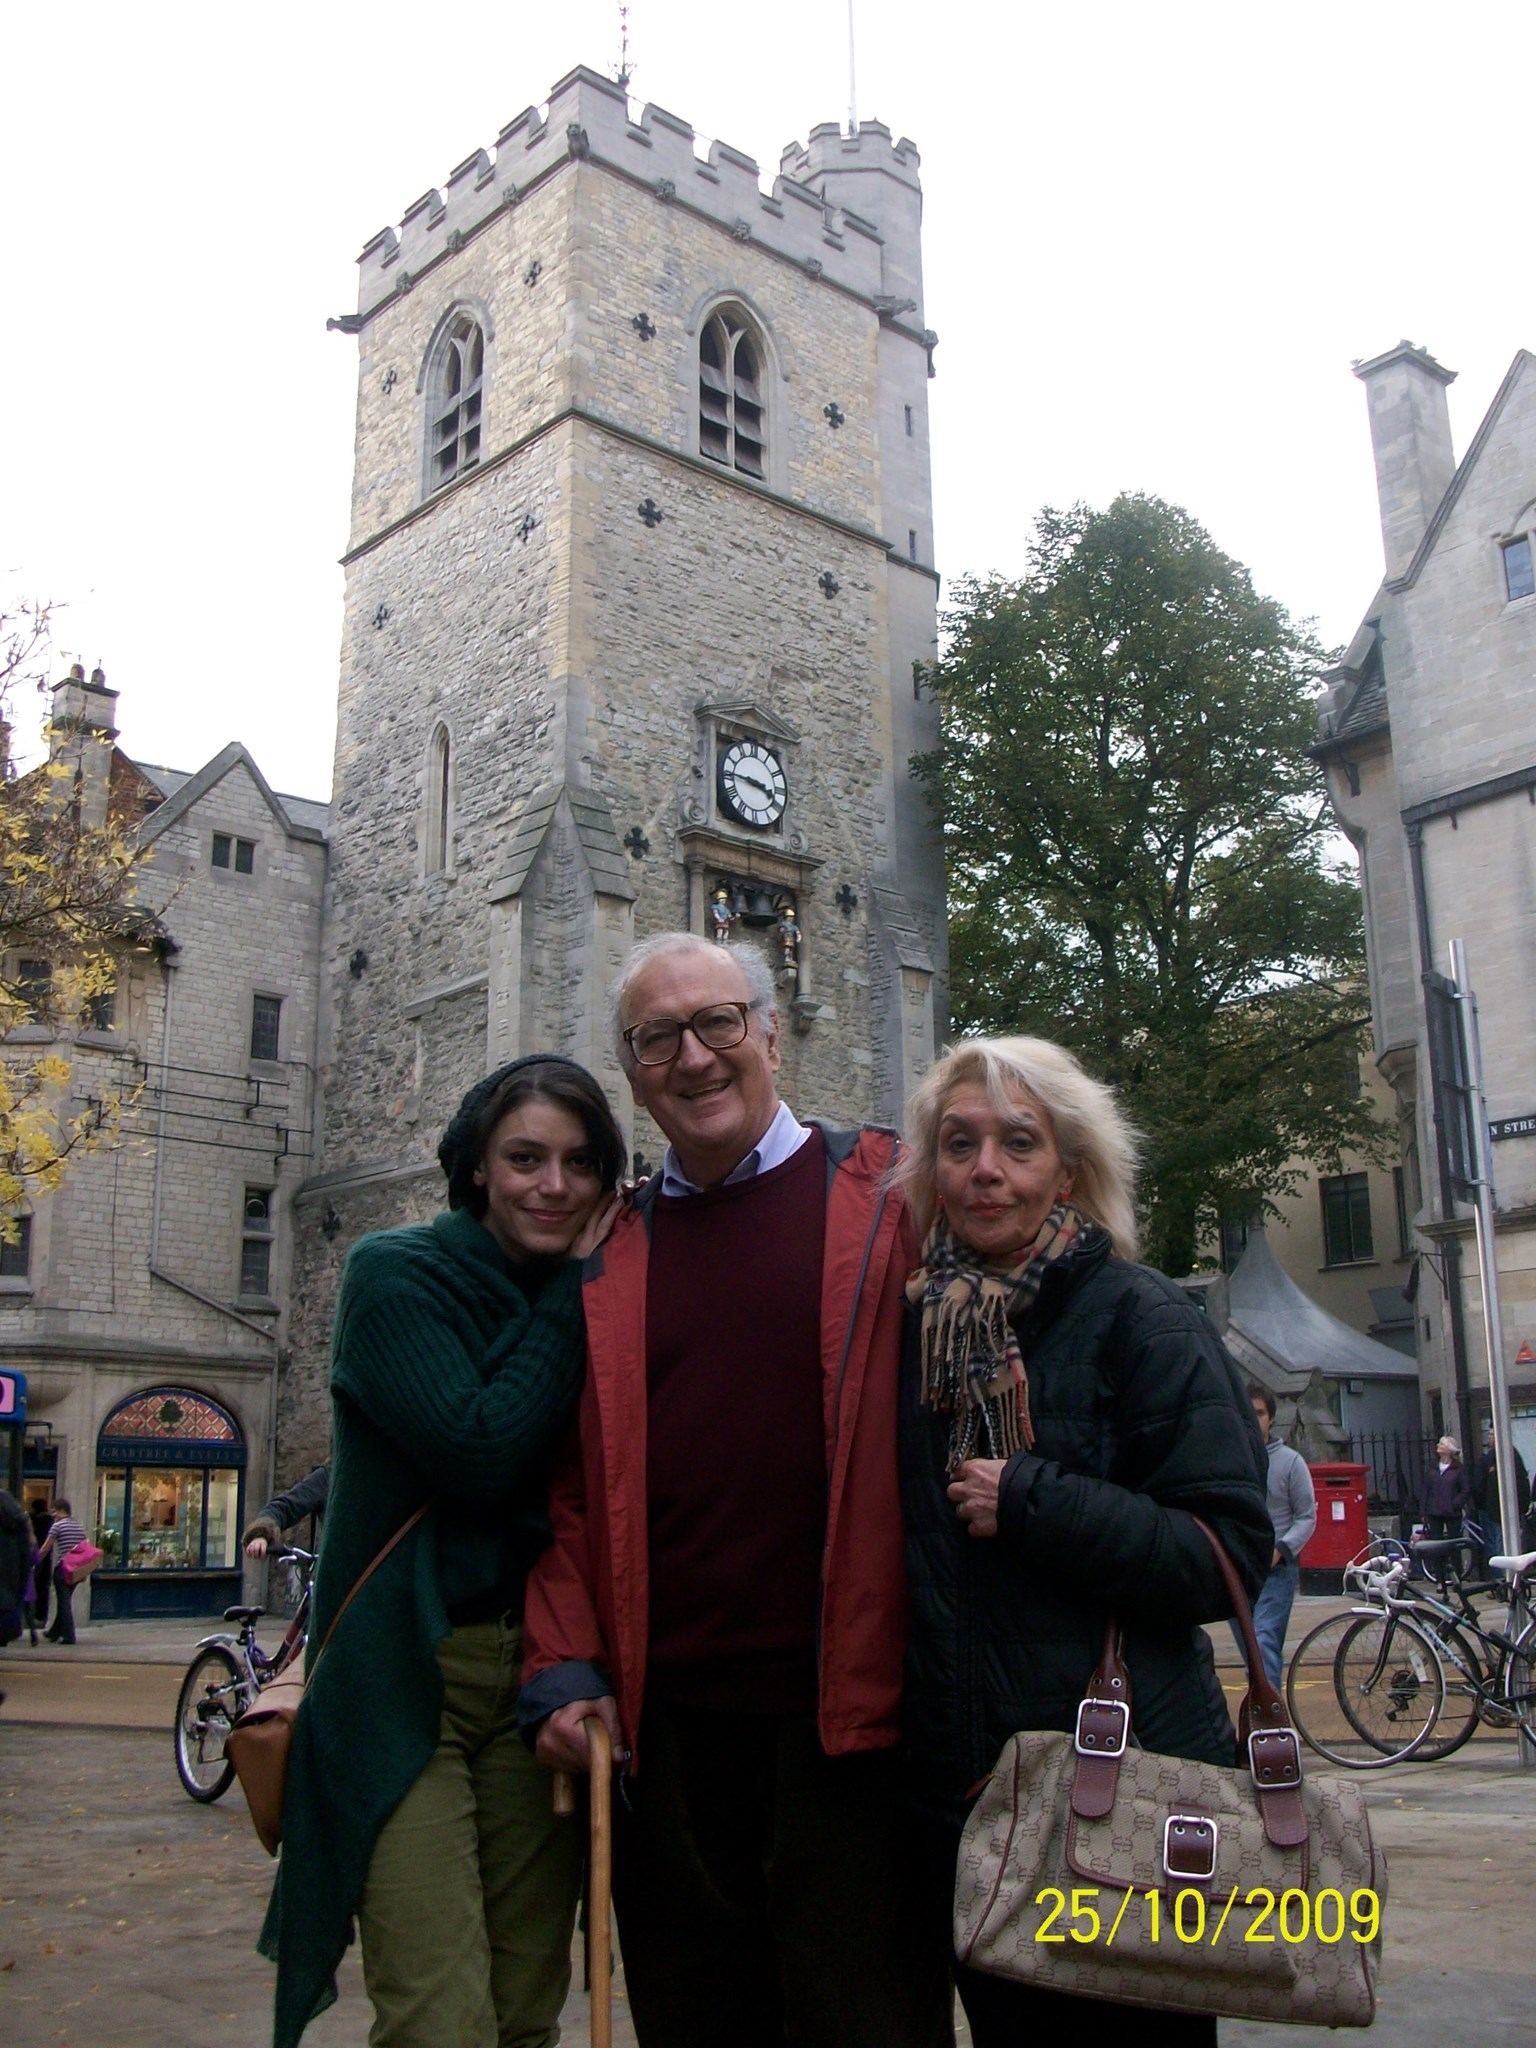 He truly loved Oxford. Carfax, 2009